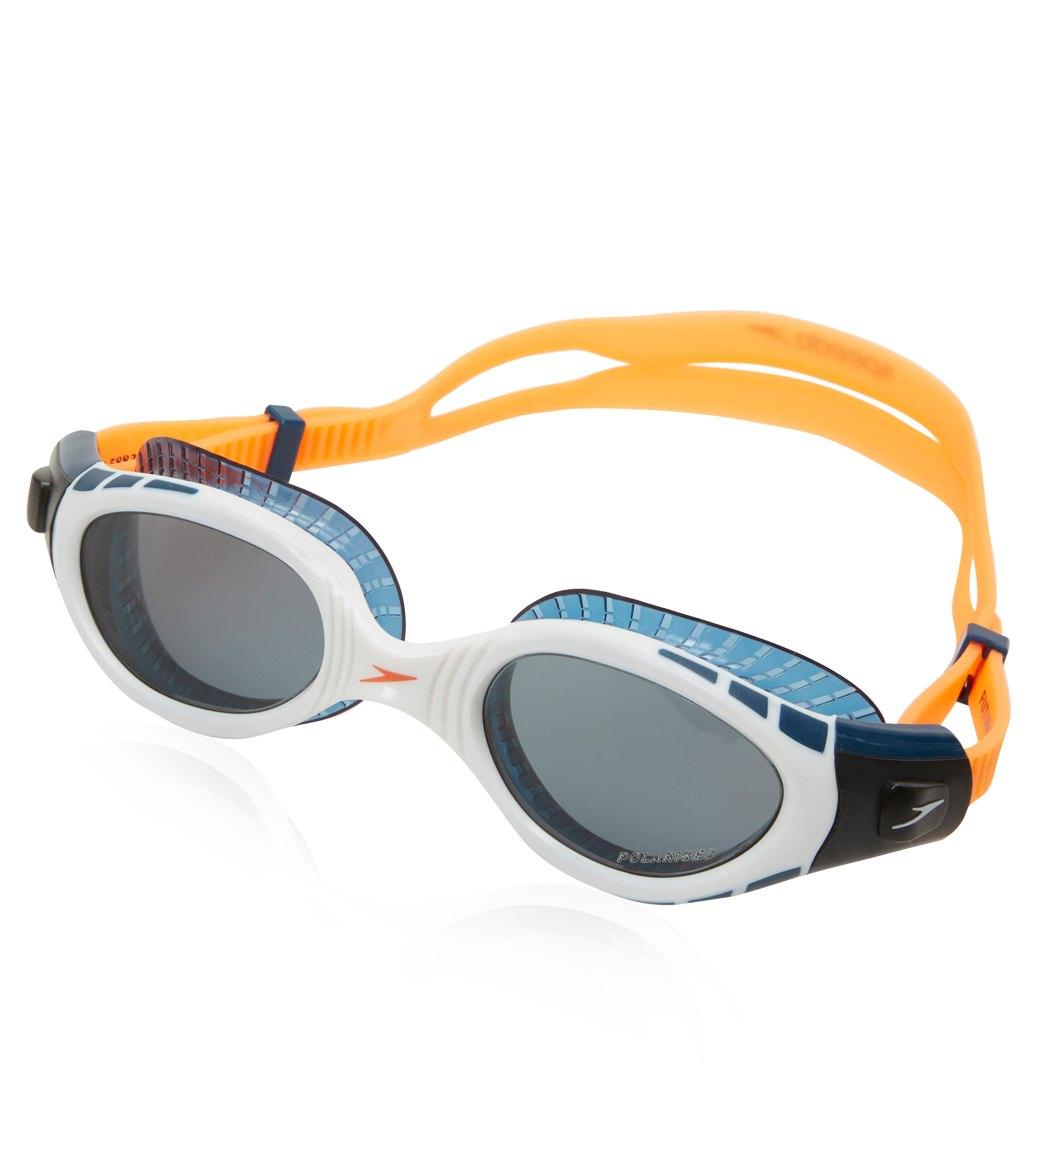 Speedo Futura Biofuse Flexiseal Triathlon Goggle at SwimOutlet.com f57d82a743d2